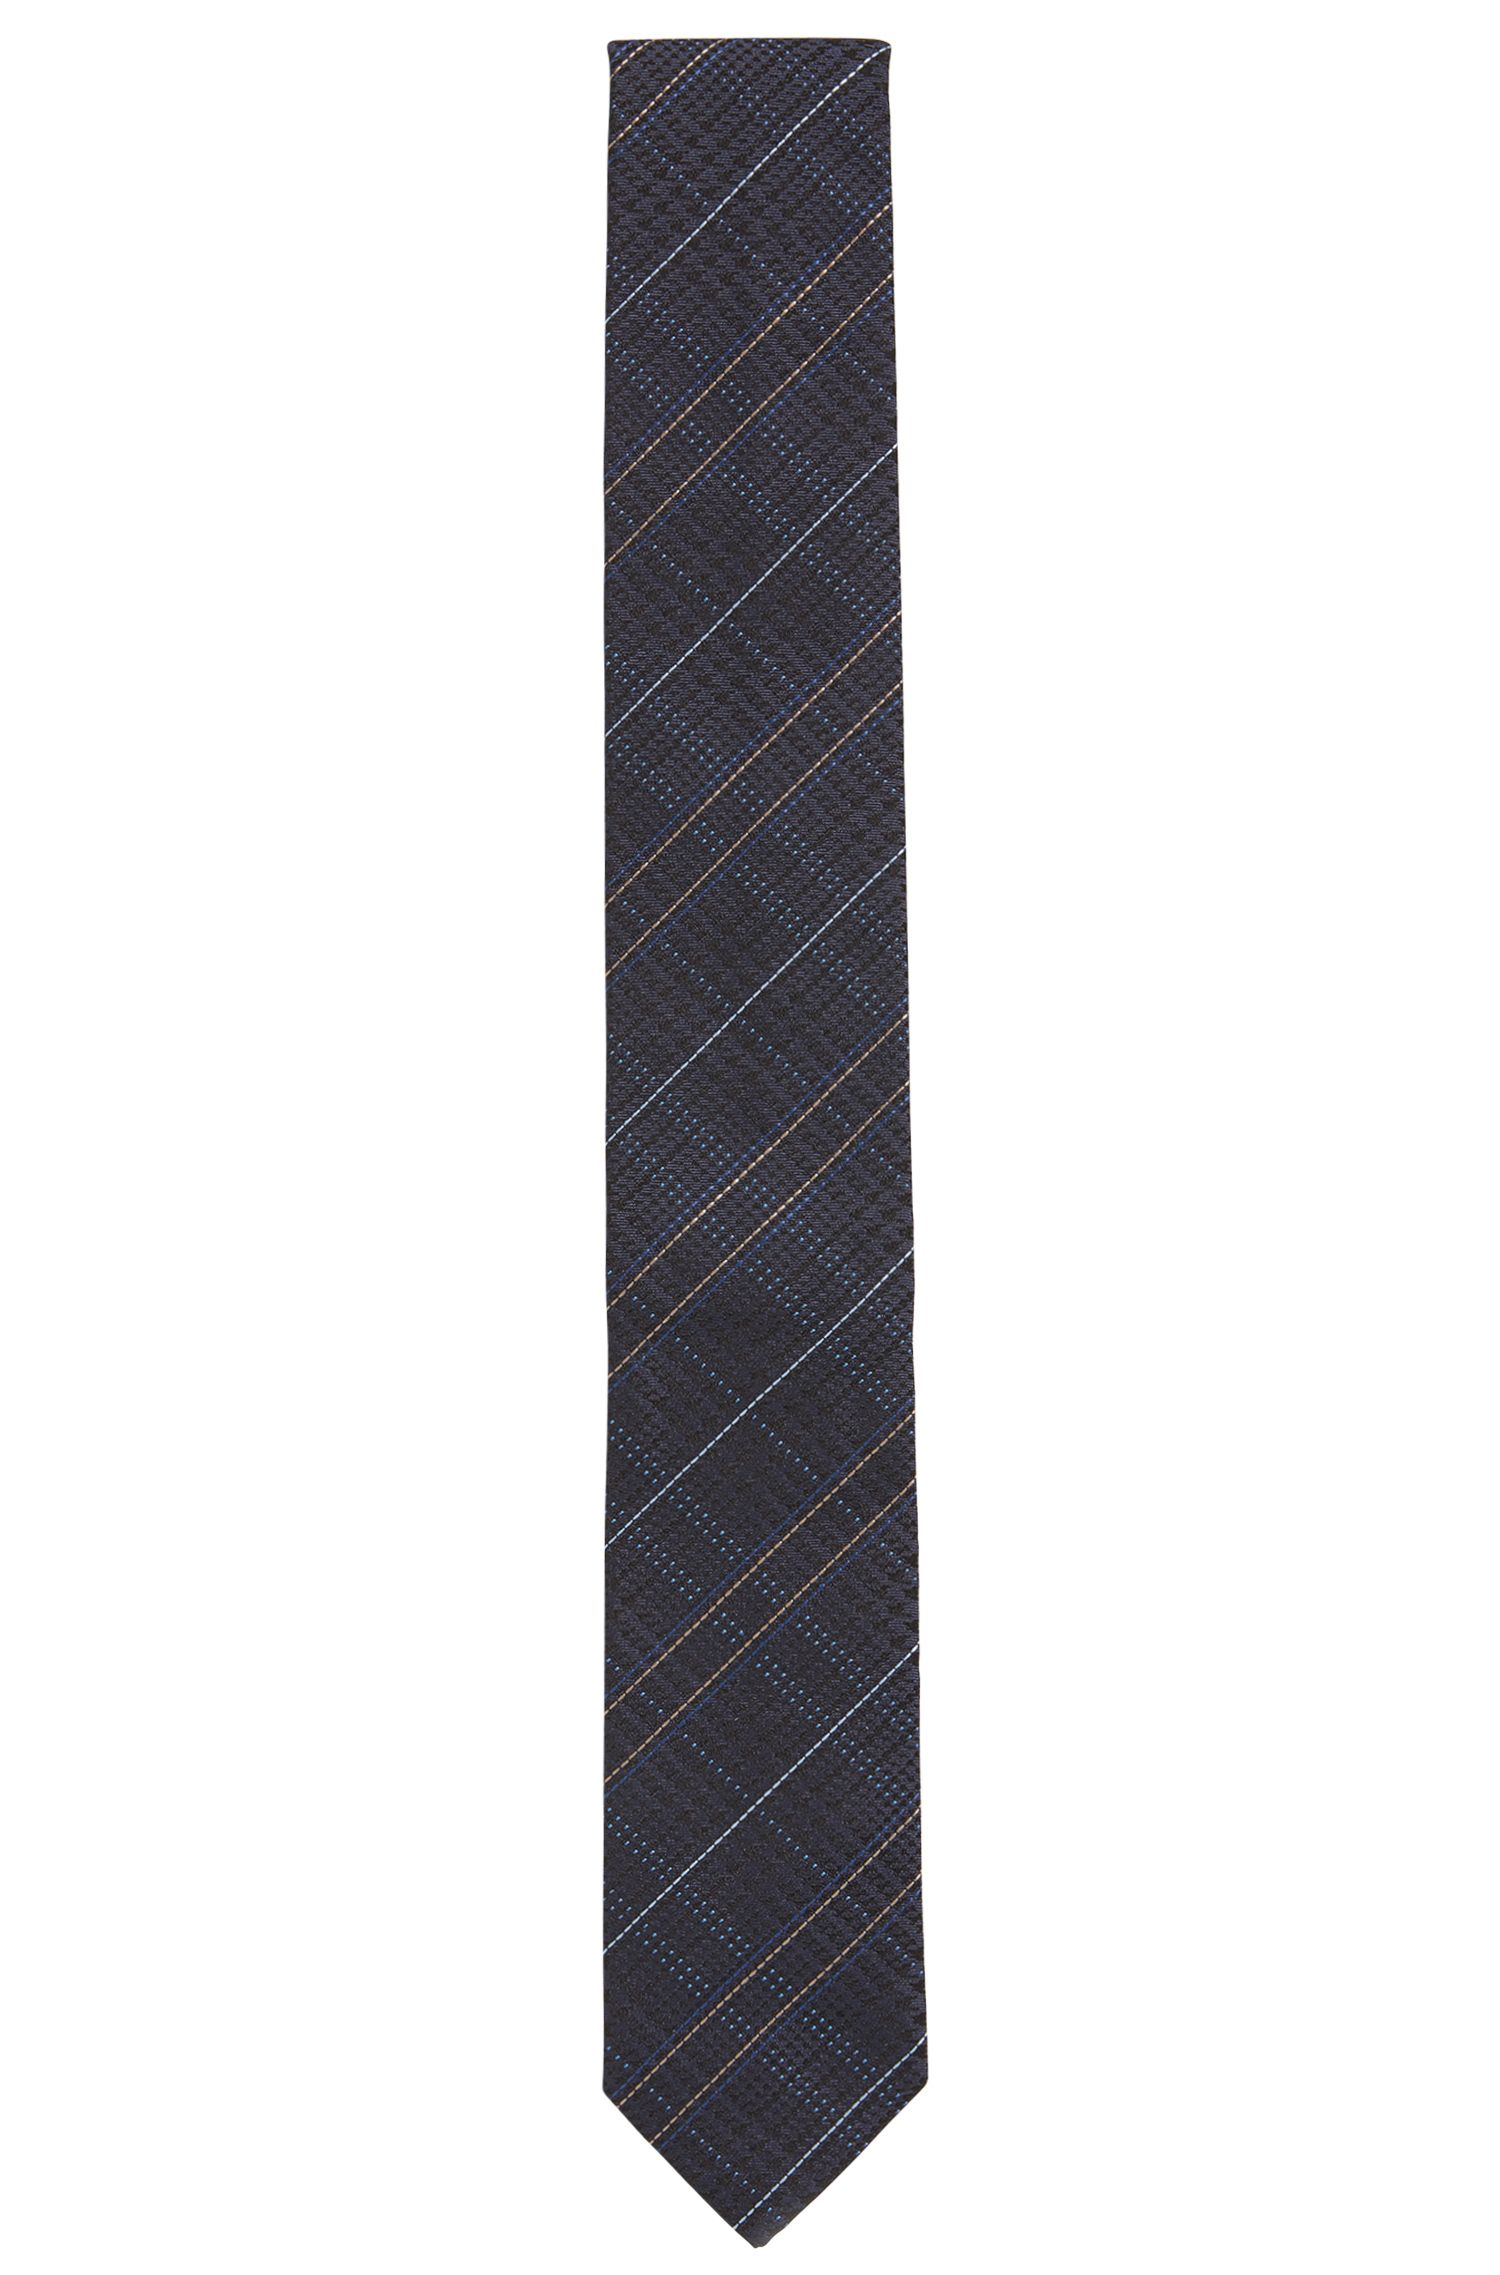 Glen plaid tie in silk jacquard